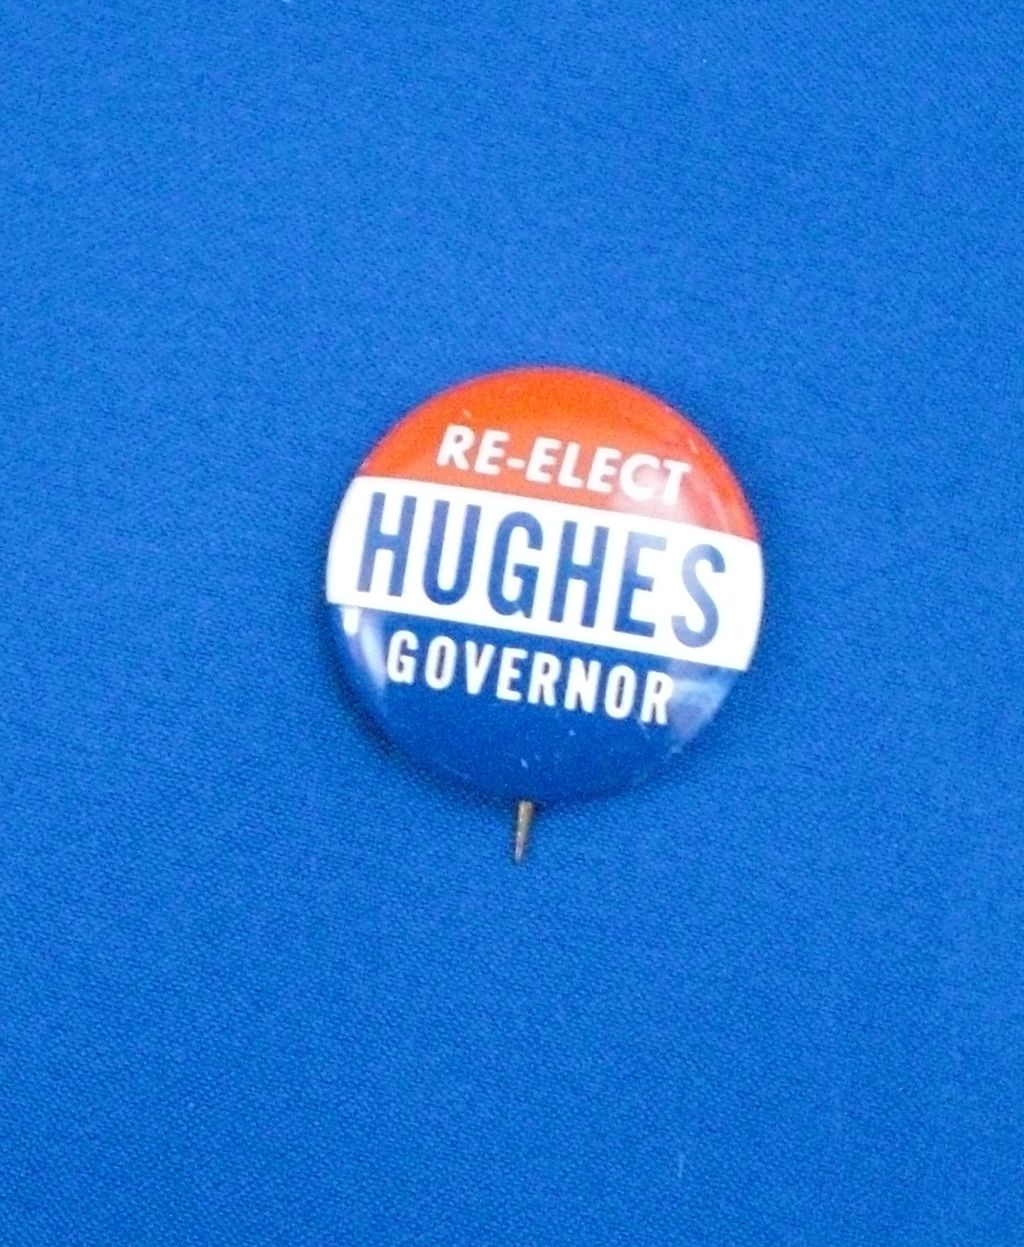 Re-Elect Richard Hughes Governor NJ New Jersey Political Pinback Button